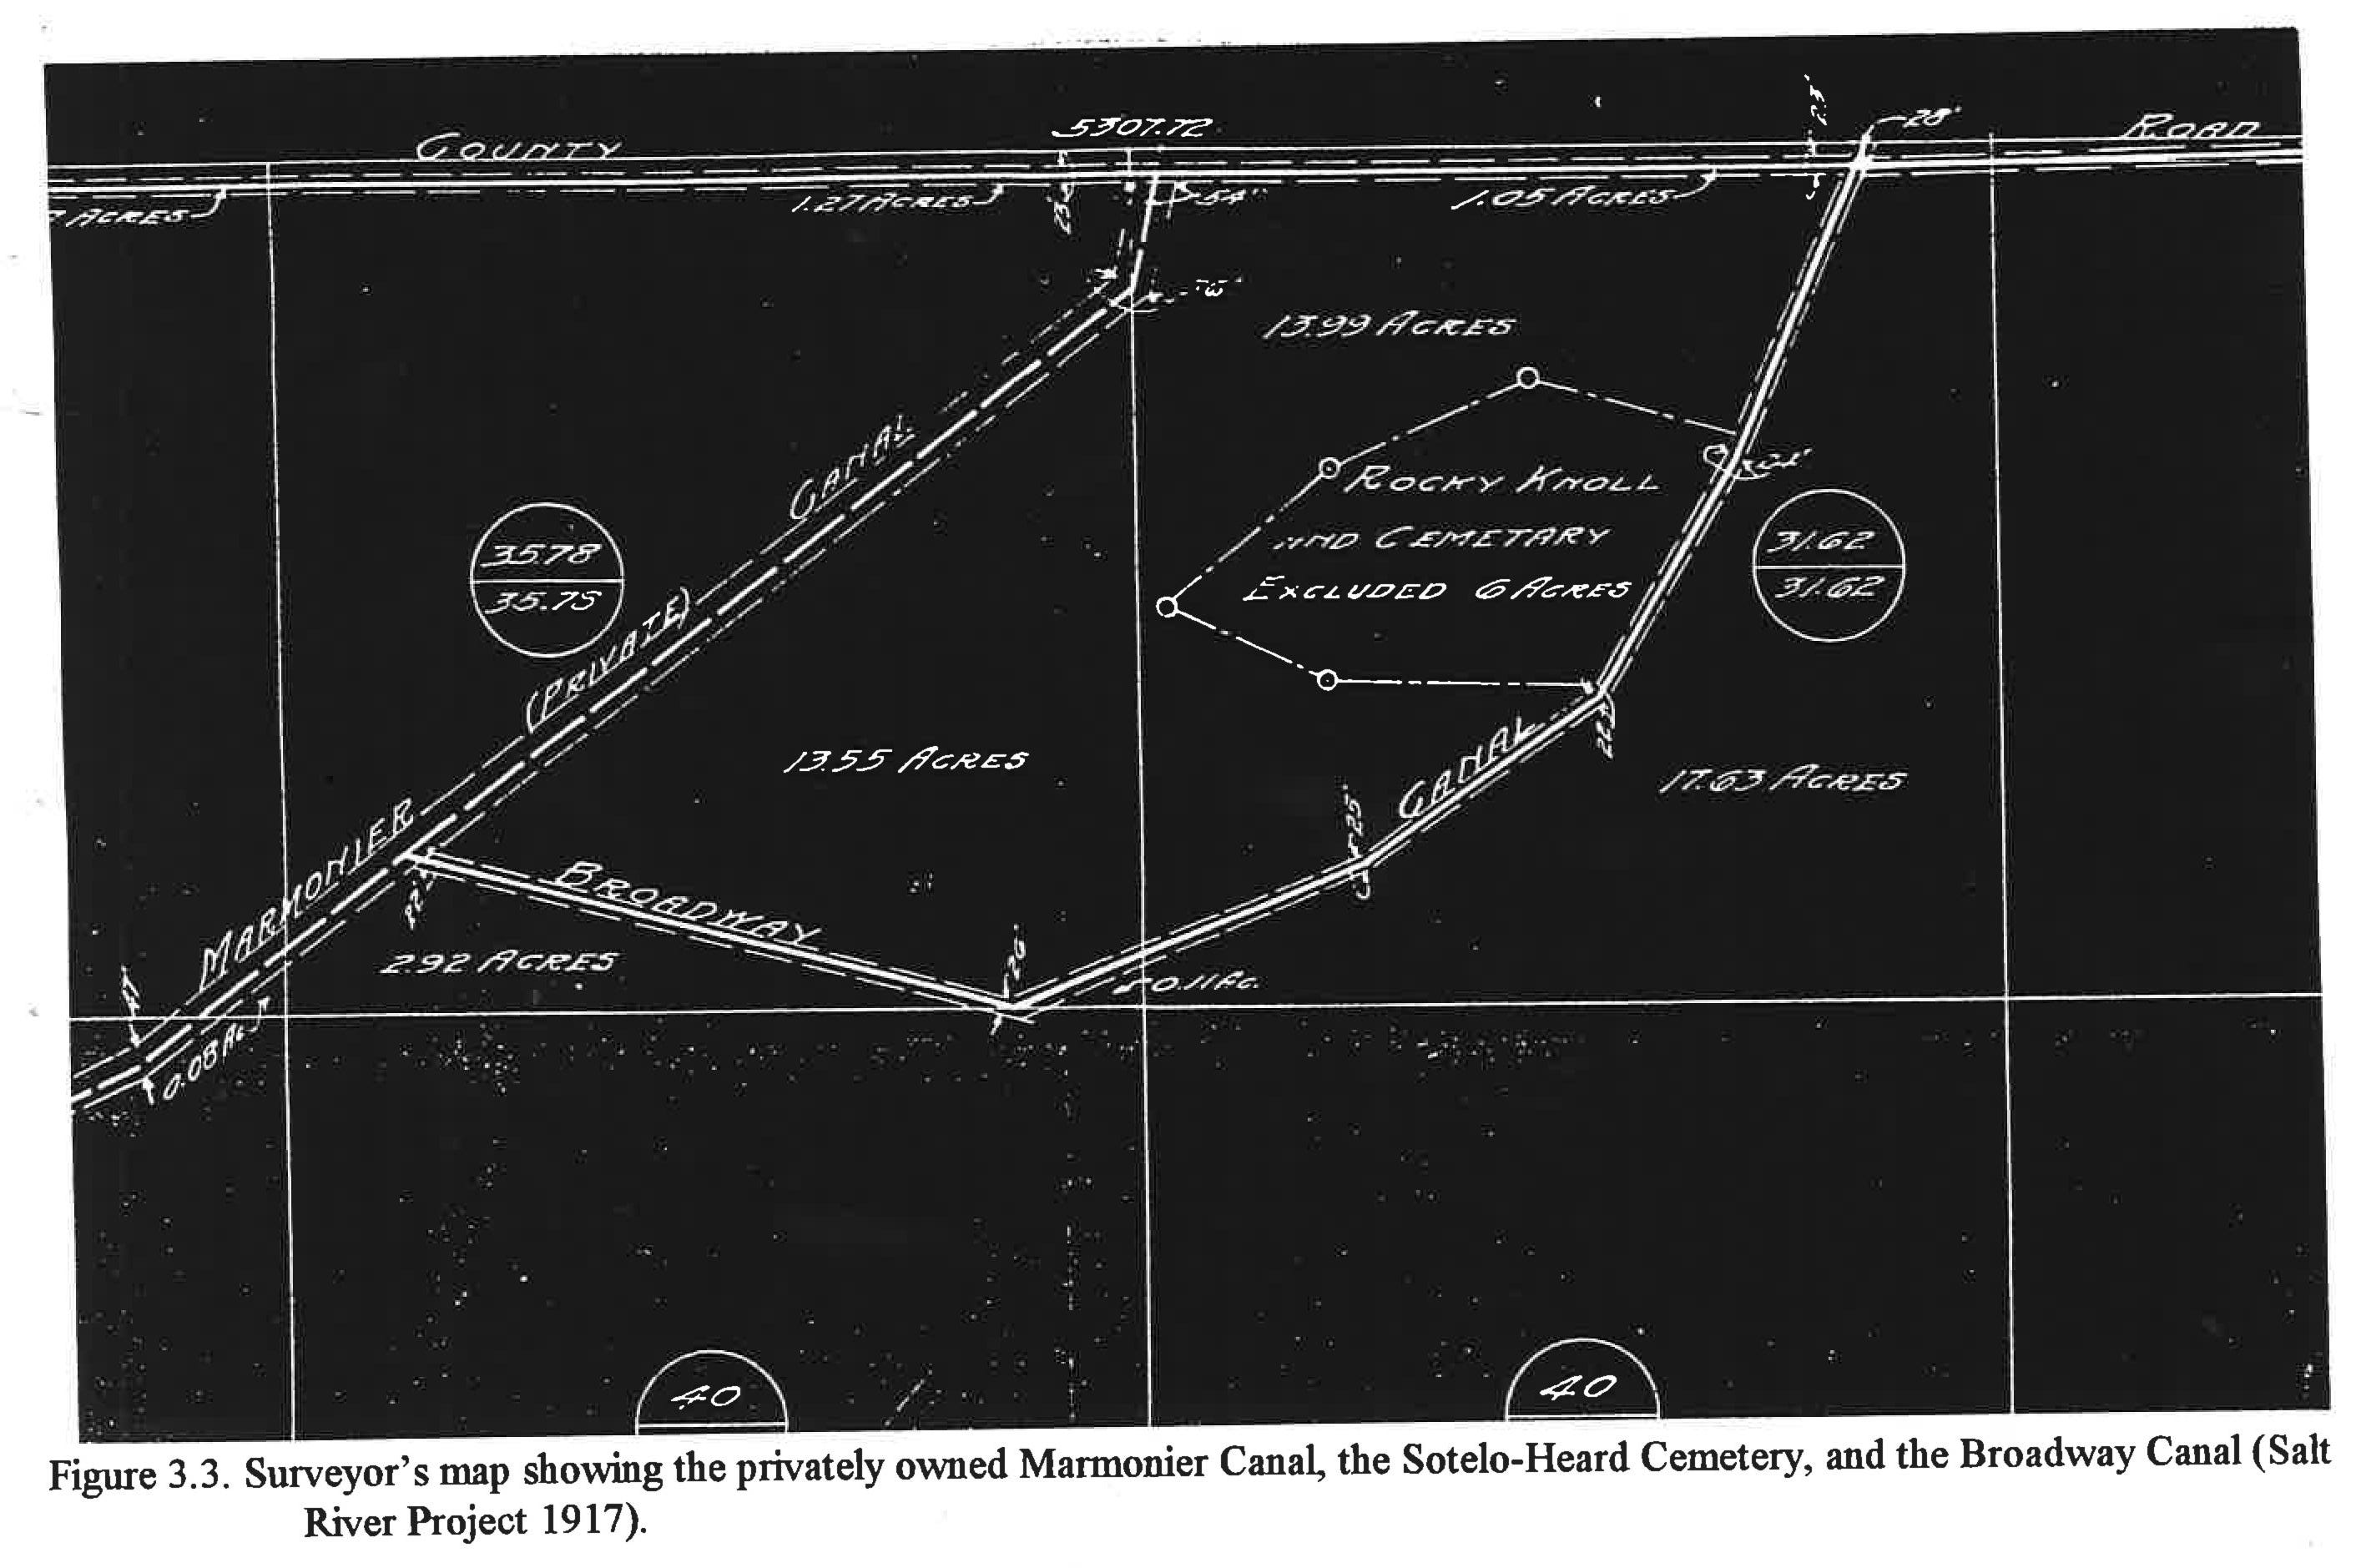 A 1917 Salt River Project surveyor's map shows the Sotelo-Heard Cemetery and it's proximity to multiple canals